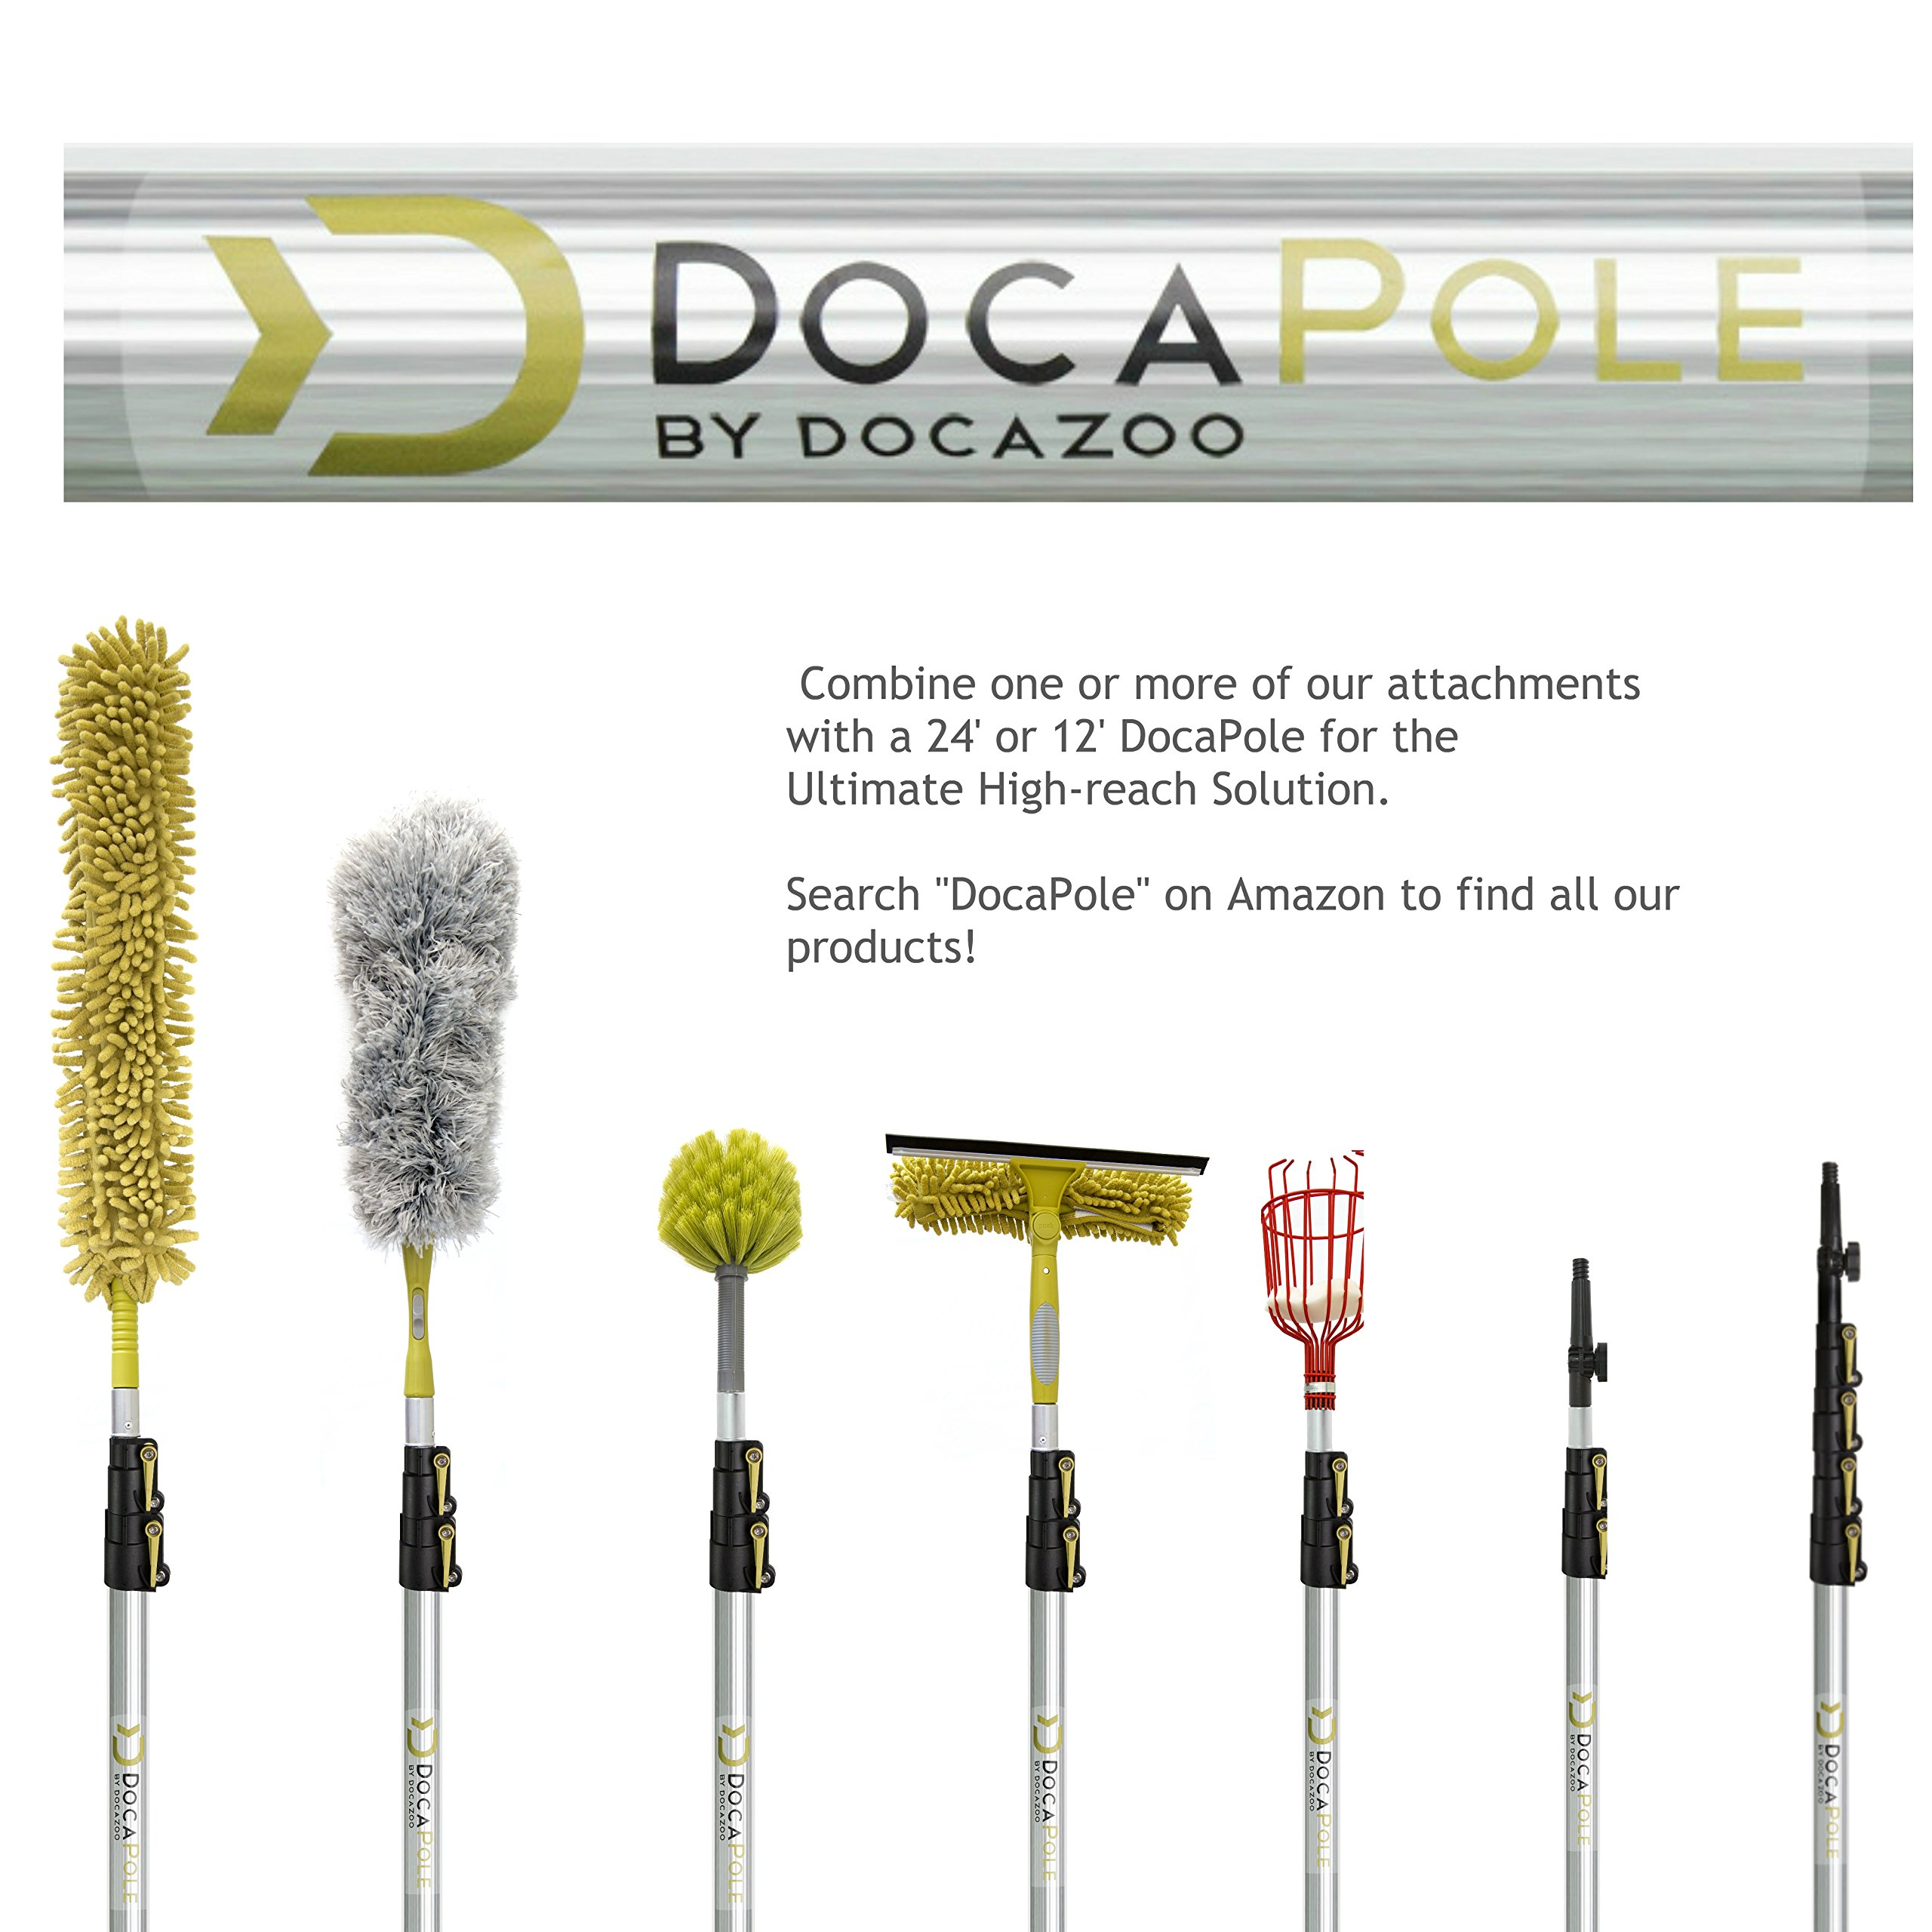 DocaPole Dusting Kit for Extension Pole or by Hand | Cleaning Kit Includes 3 Dusting Attachments | Cobweb Duster | Microfiber Feather Duster | Flexible Chenille Ceiling Fan Duster by DOCAZOO (Image #7)